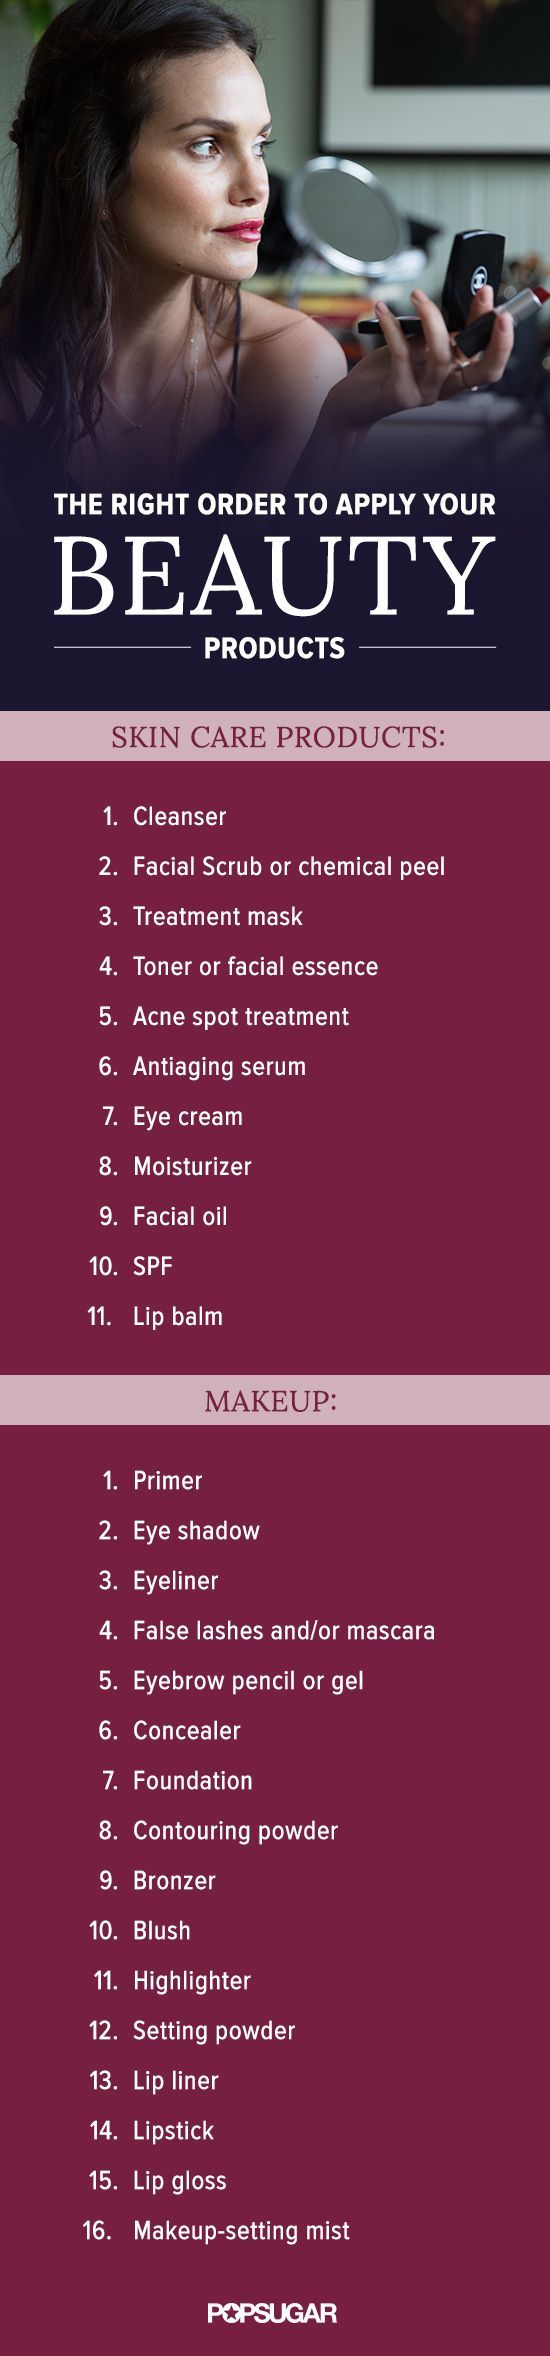 Have you been putting your makeup and skin care products on in the wrong order? Pin this to make sure you're doing it right.